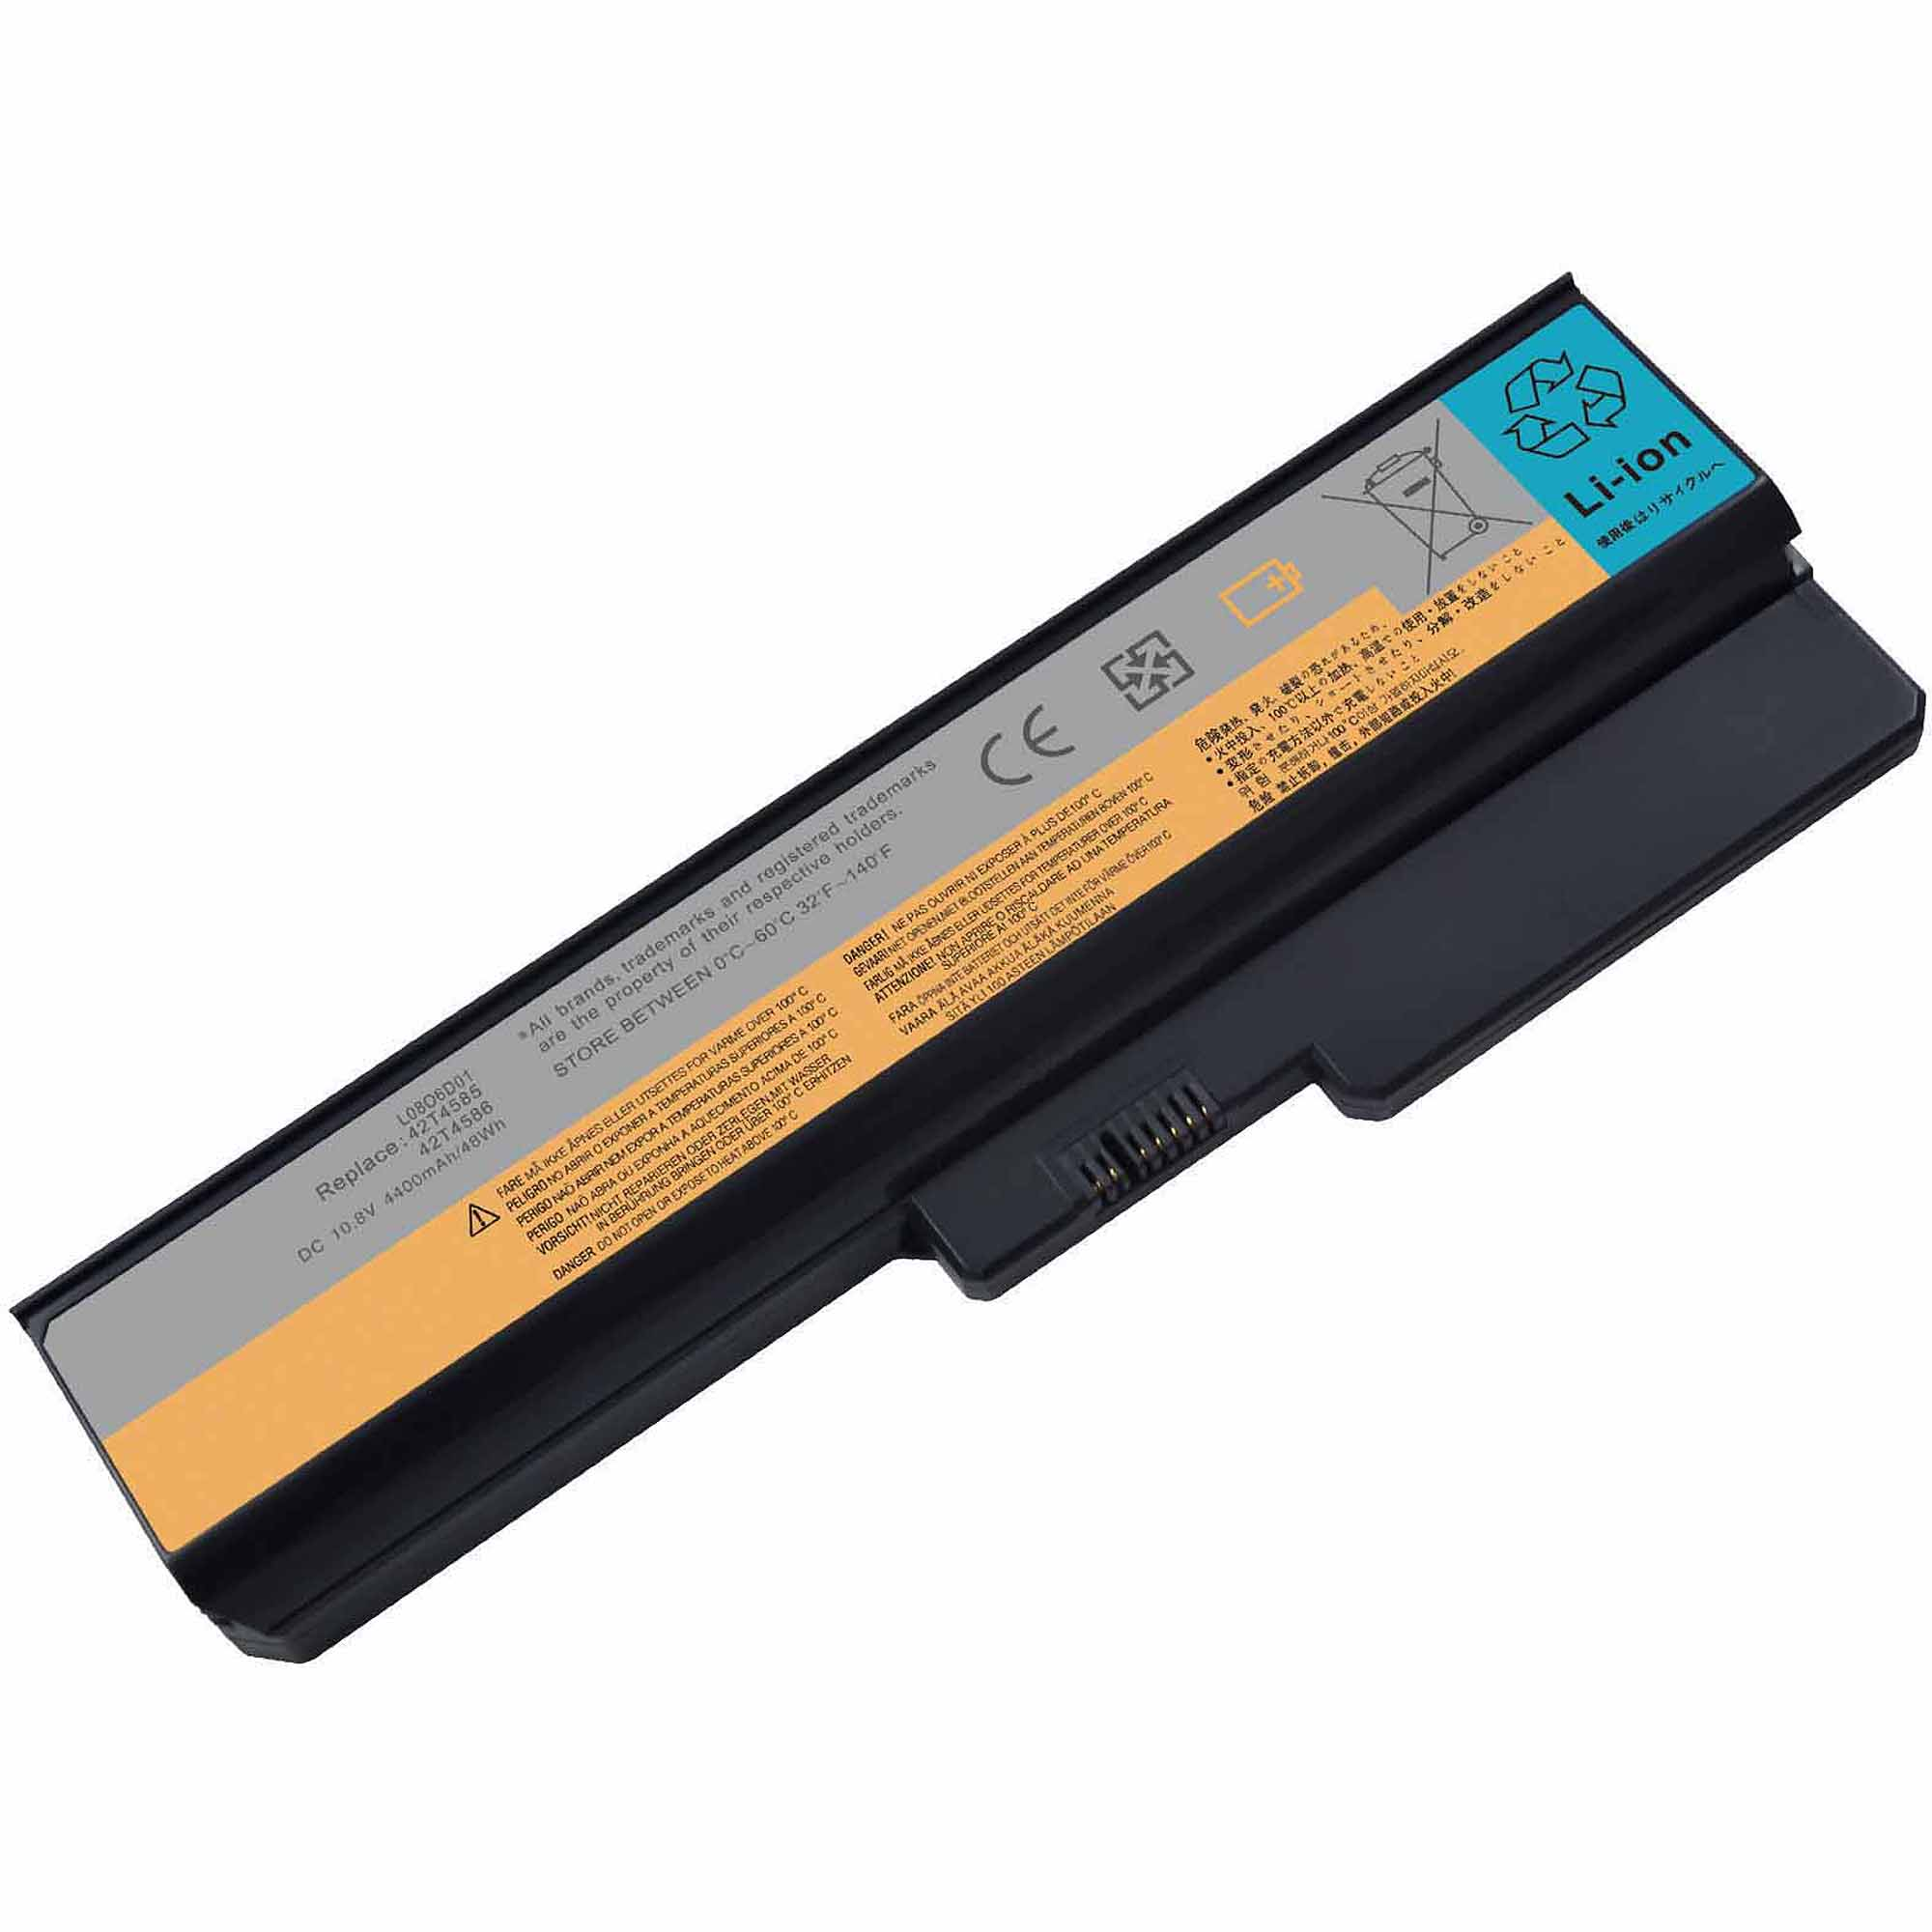 Replacement Laptop G450 Battery for IBM Laptop PCs